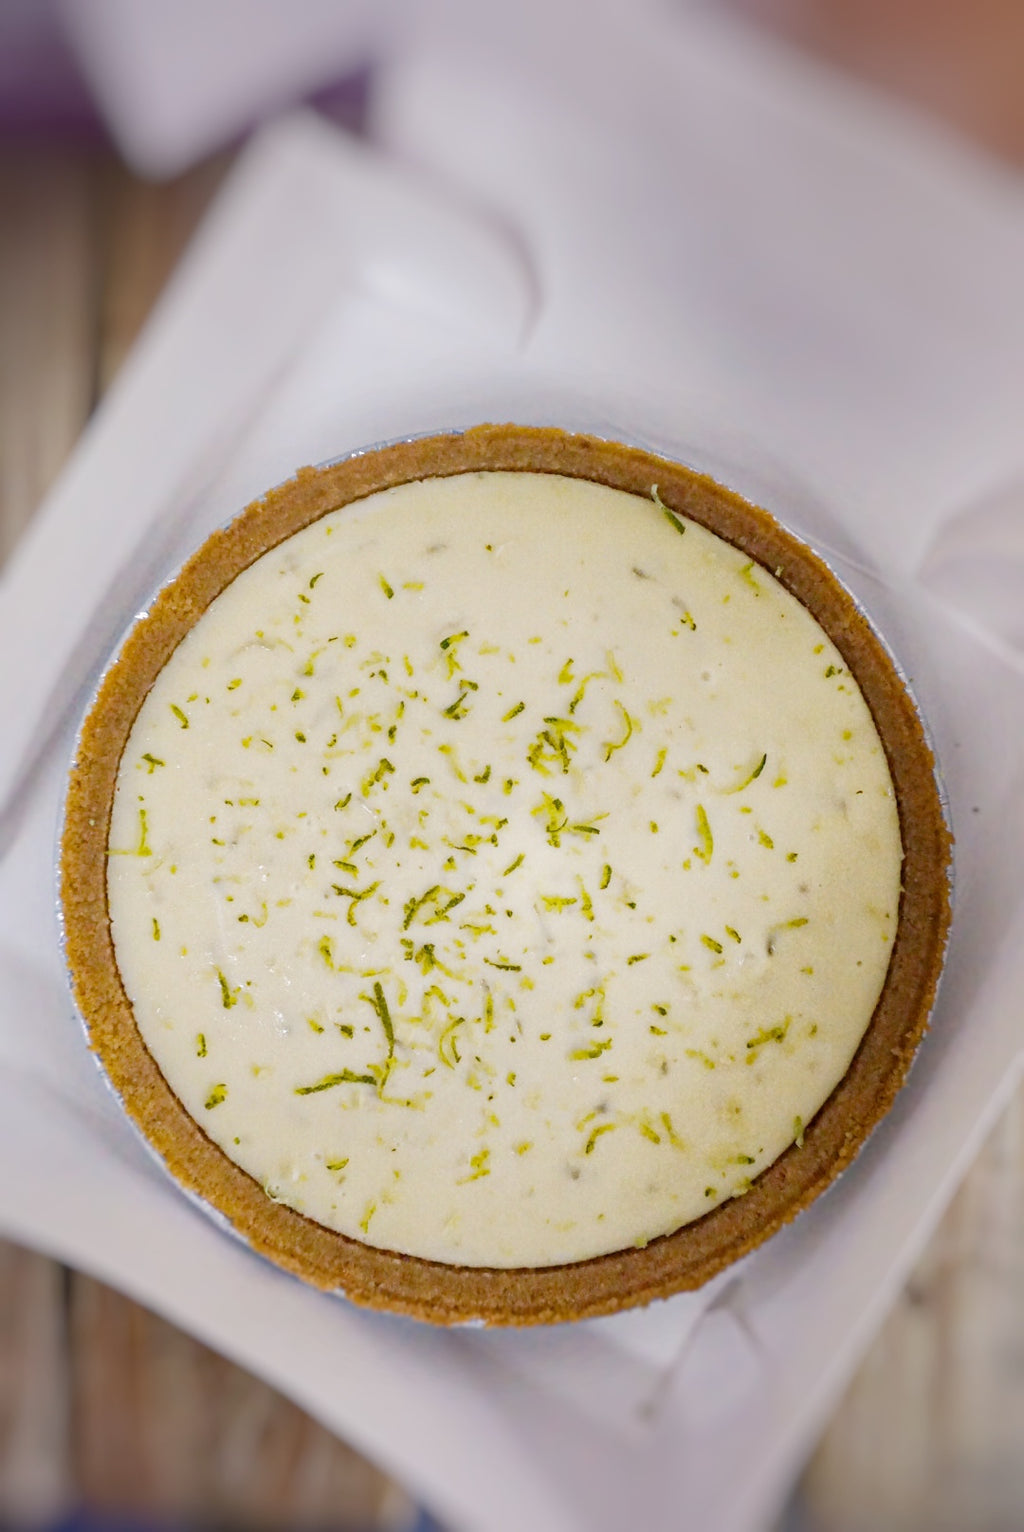 Lulu's Key Lime Pie - Delivery